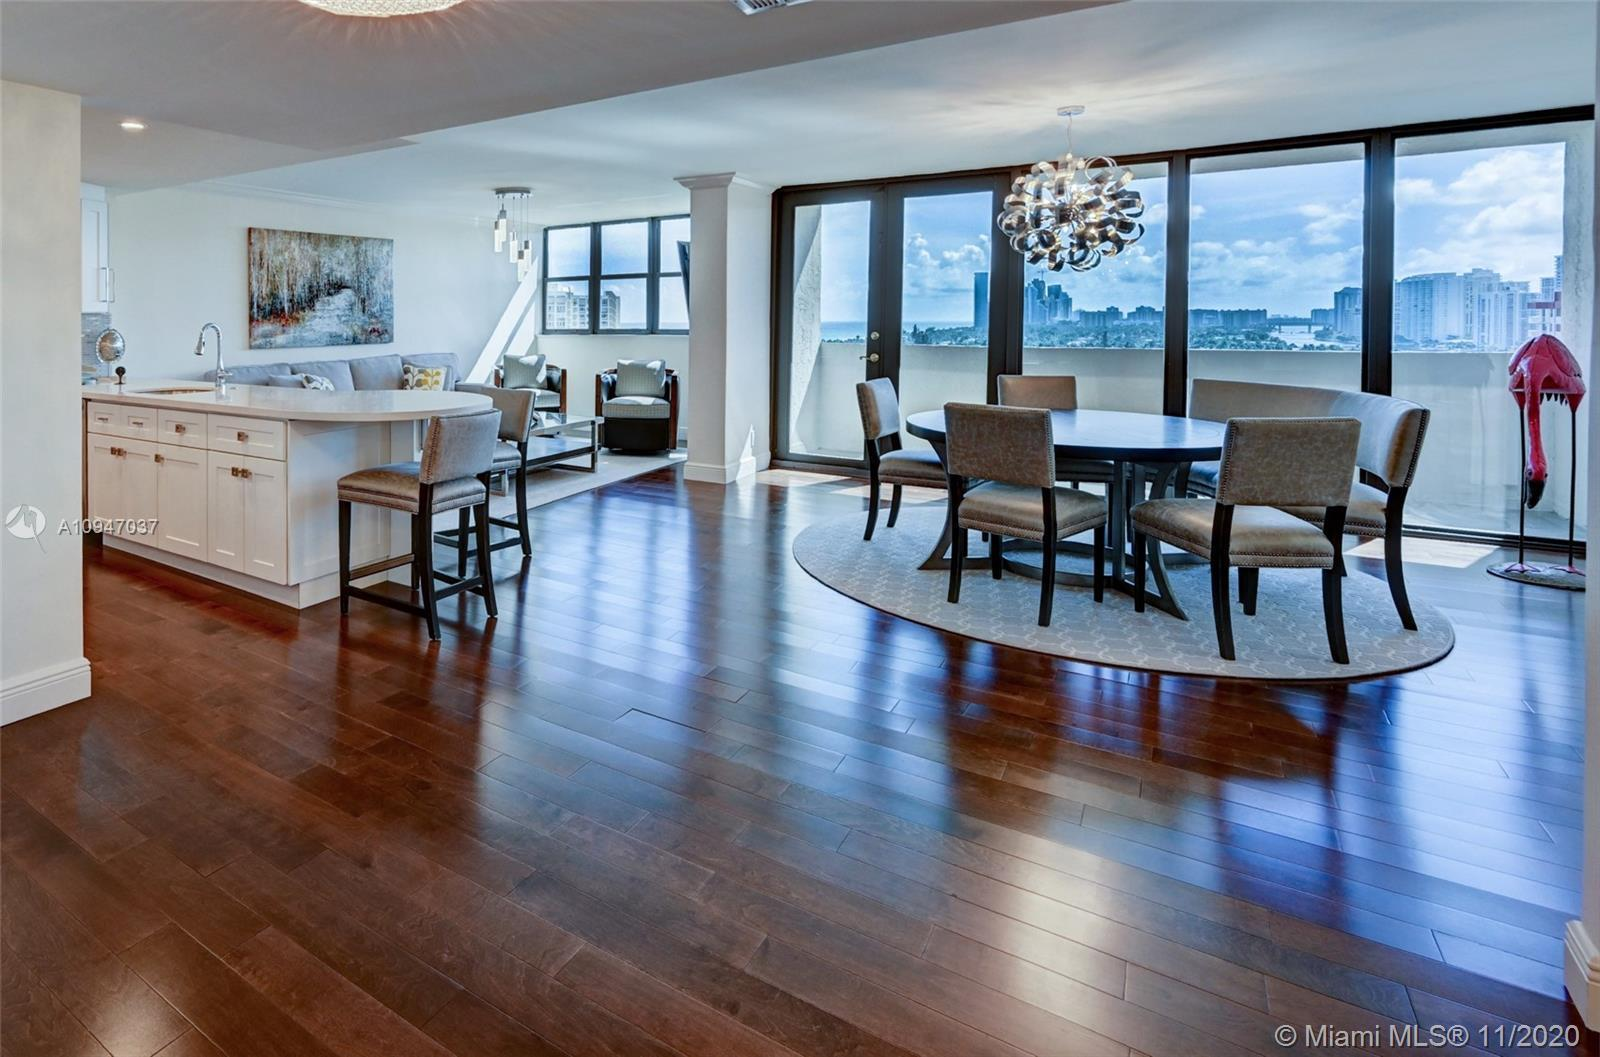 RARE FIND - GORGEOUS 3 BEDROOM (OR 2 BEDROOM PLUS DEN) 3 BATH PENTHOUSE WITH AMAZING OCEAN AND INTRA